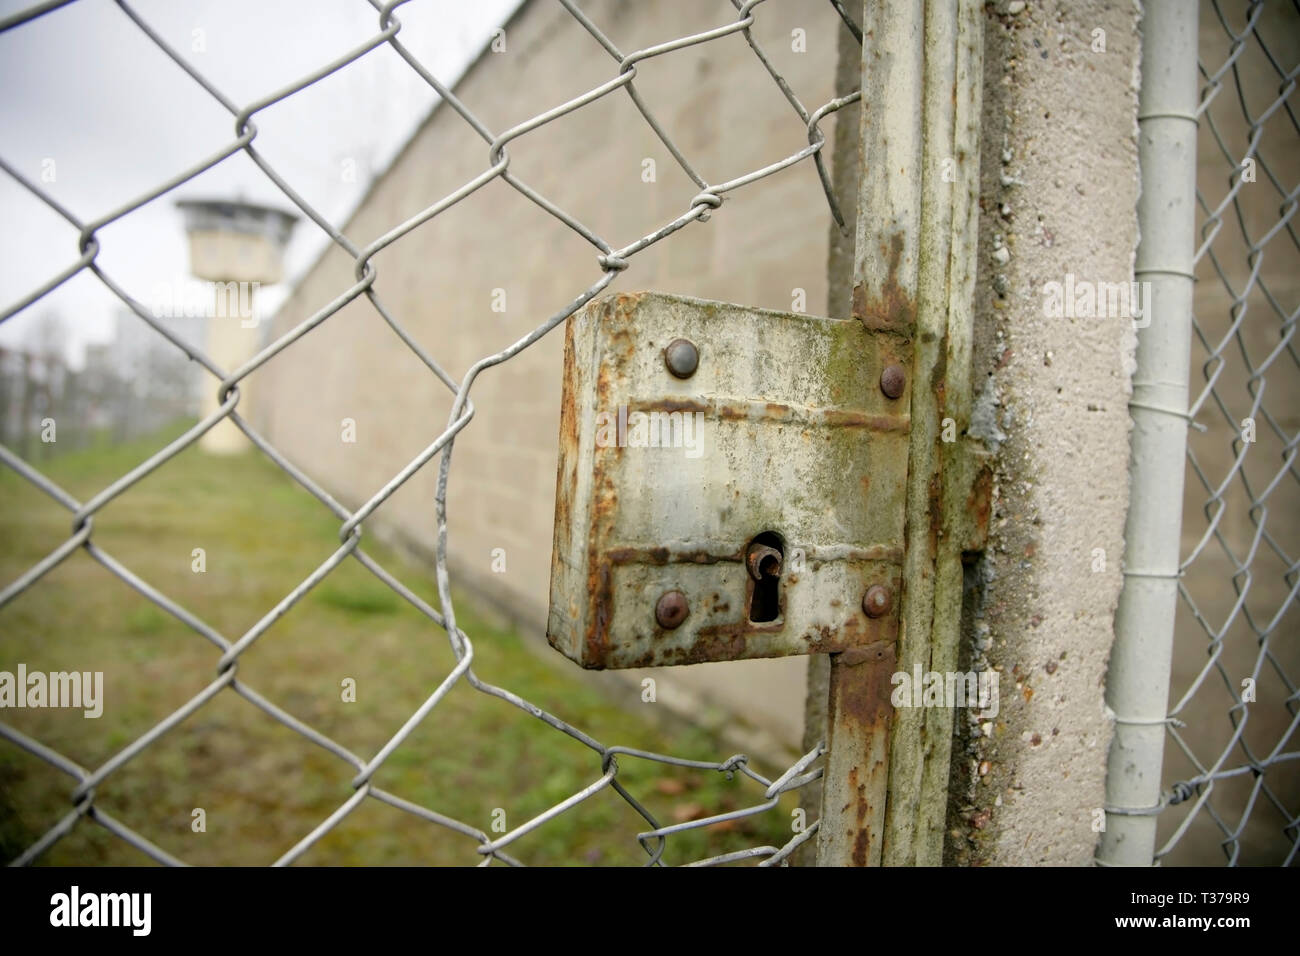 Locked gate in chain link fence, and watchtower in the perimeter of the Stasi HQ Hohenschonhausen complex, Berlin, Germany. - Stock Image